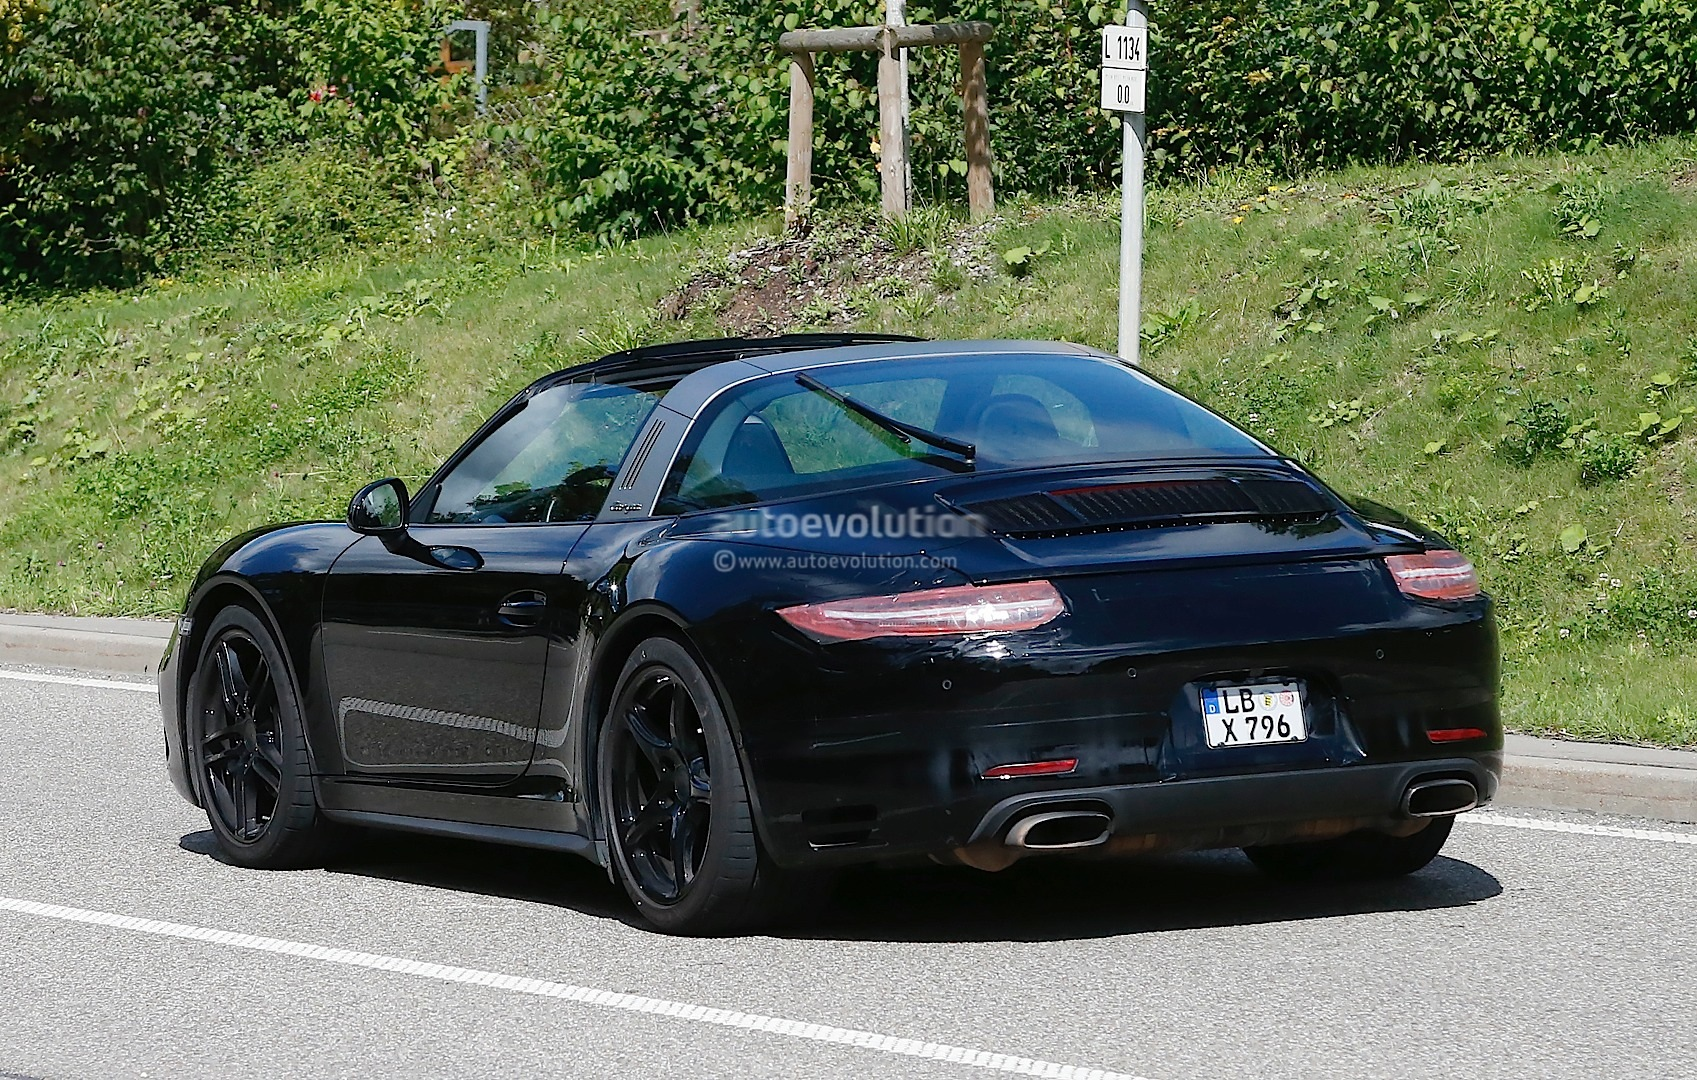 2015 - [Porsche] 911 Restylée [991] - Page 4 Spyshots-porsche-911-targa-facelift-almost-ready-for-production_6